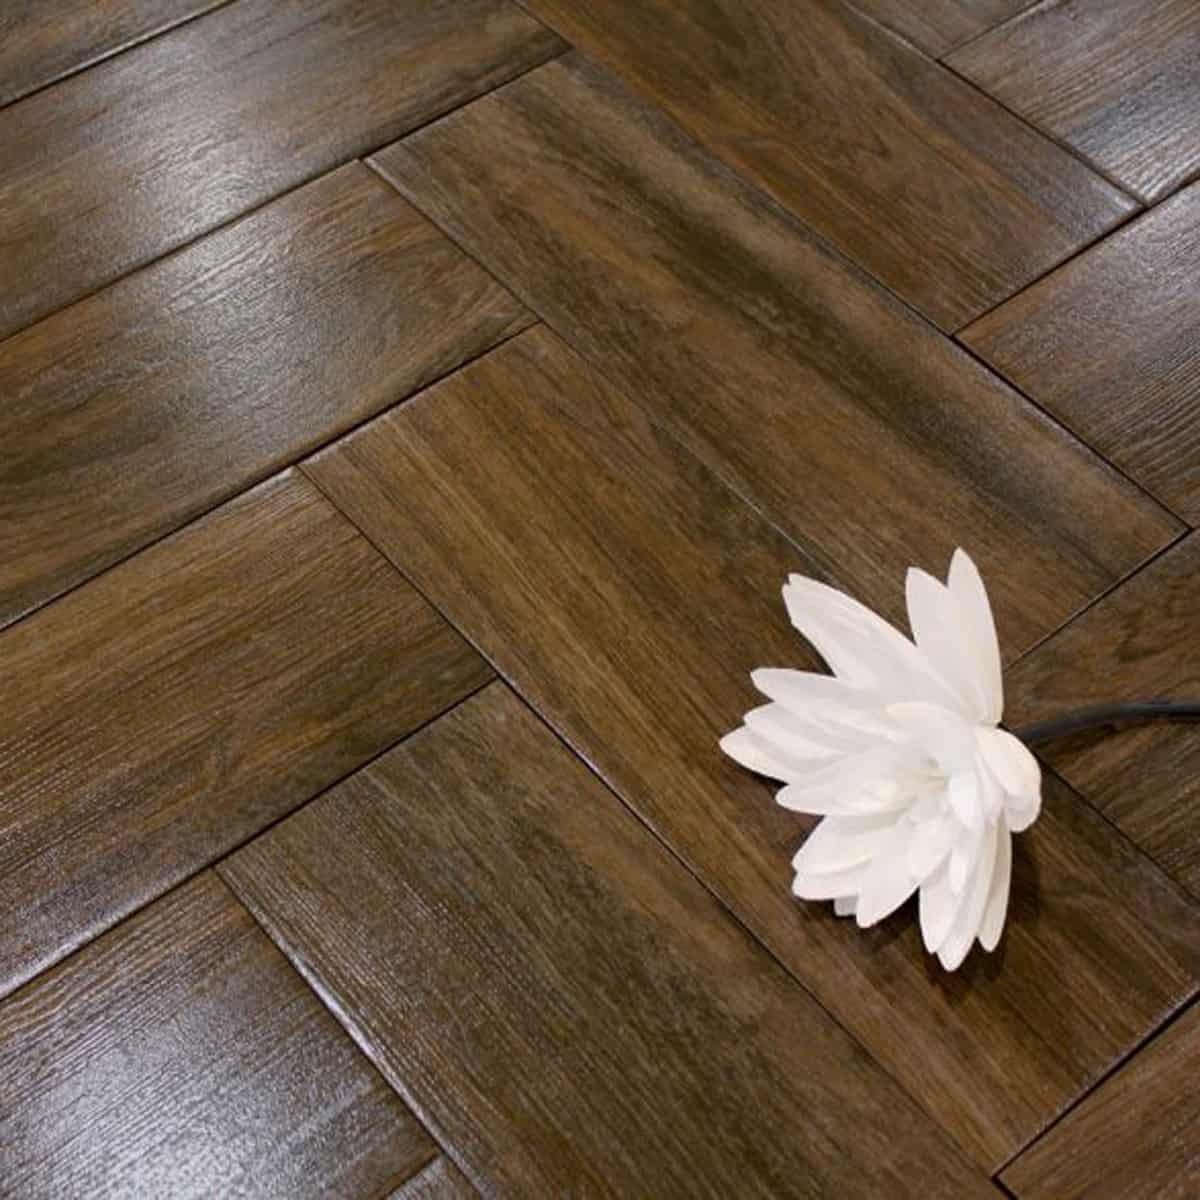 Wood Effect Tiles Home Design 1 Contemporary Tile Design